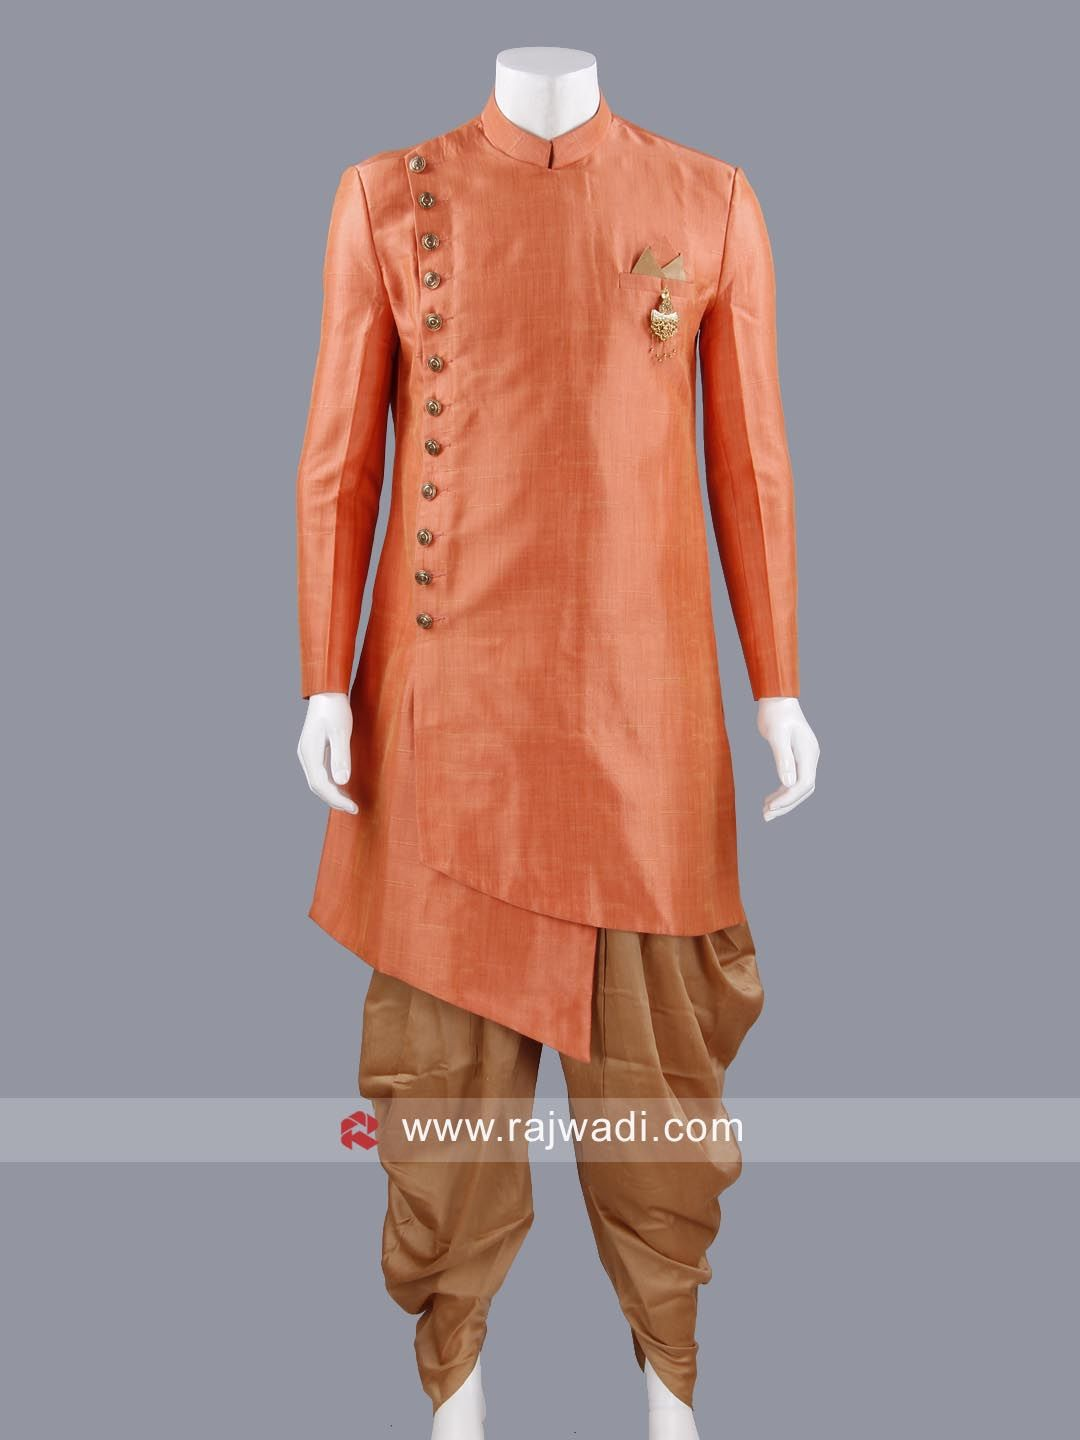 Pin On Indo Western Look For Men